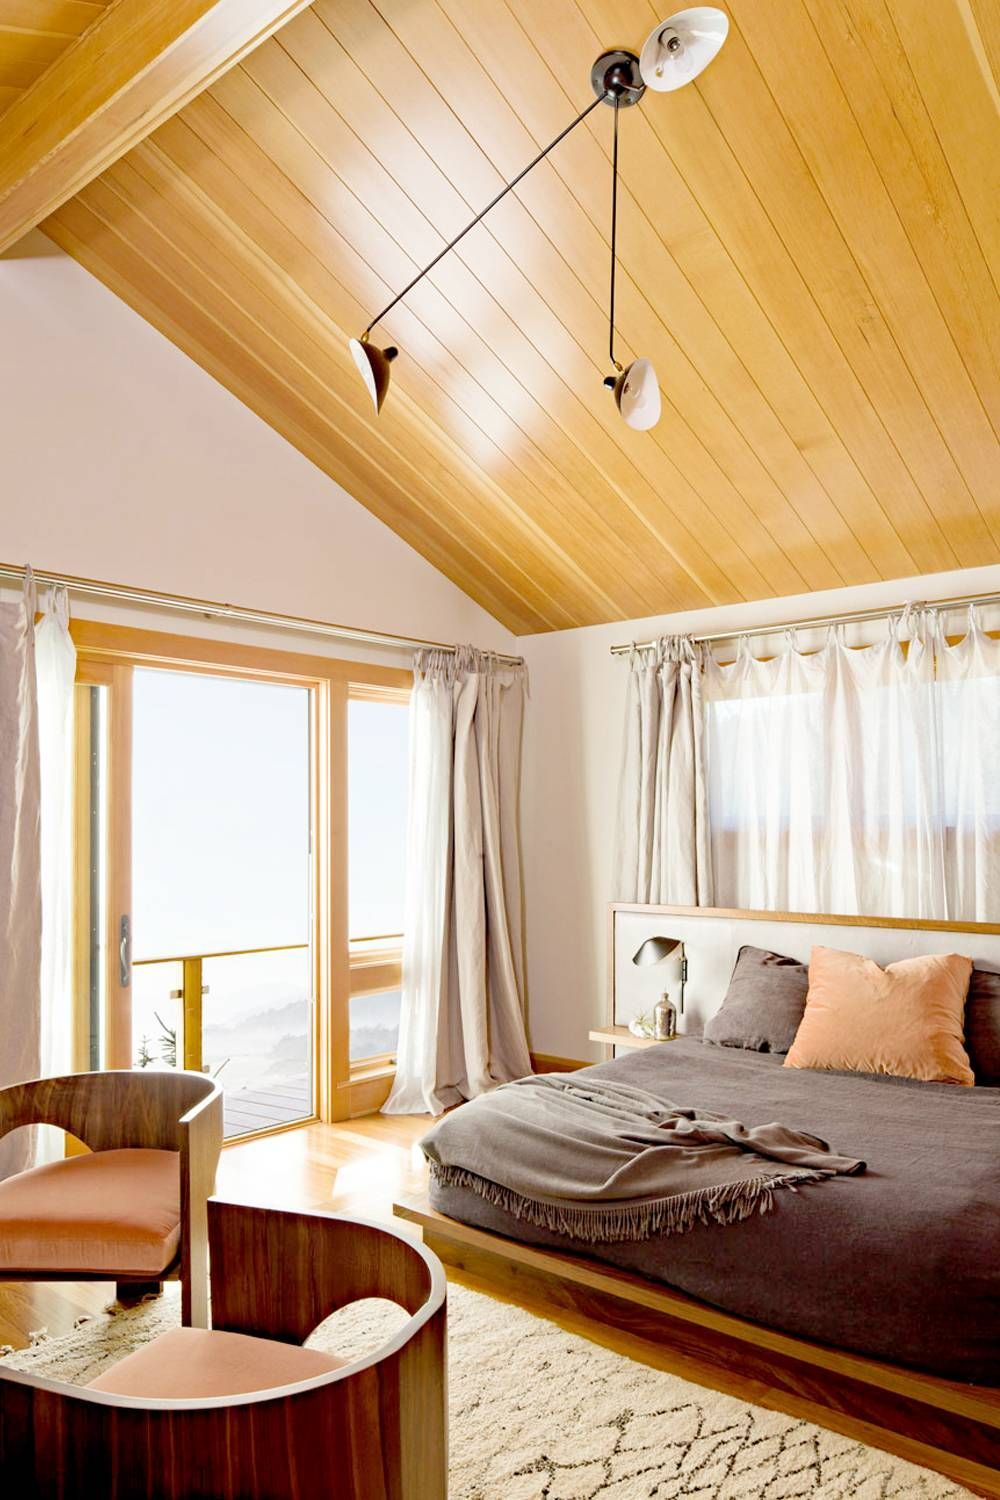 The Feng Shui Bedroom Colors That Will Bring the Best ...